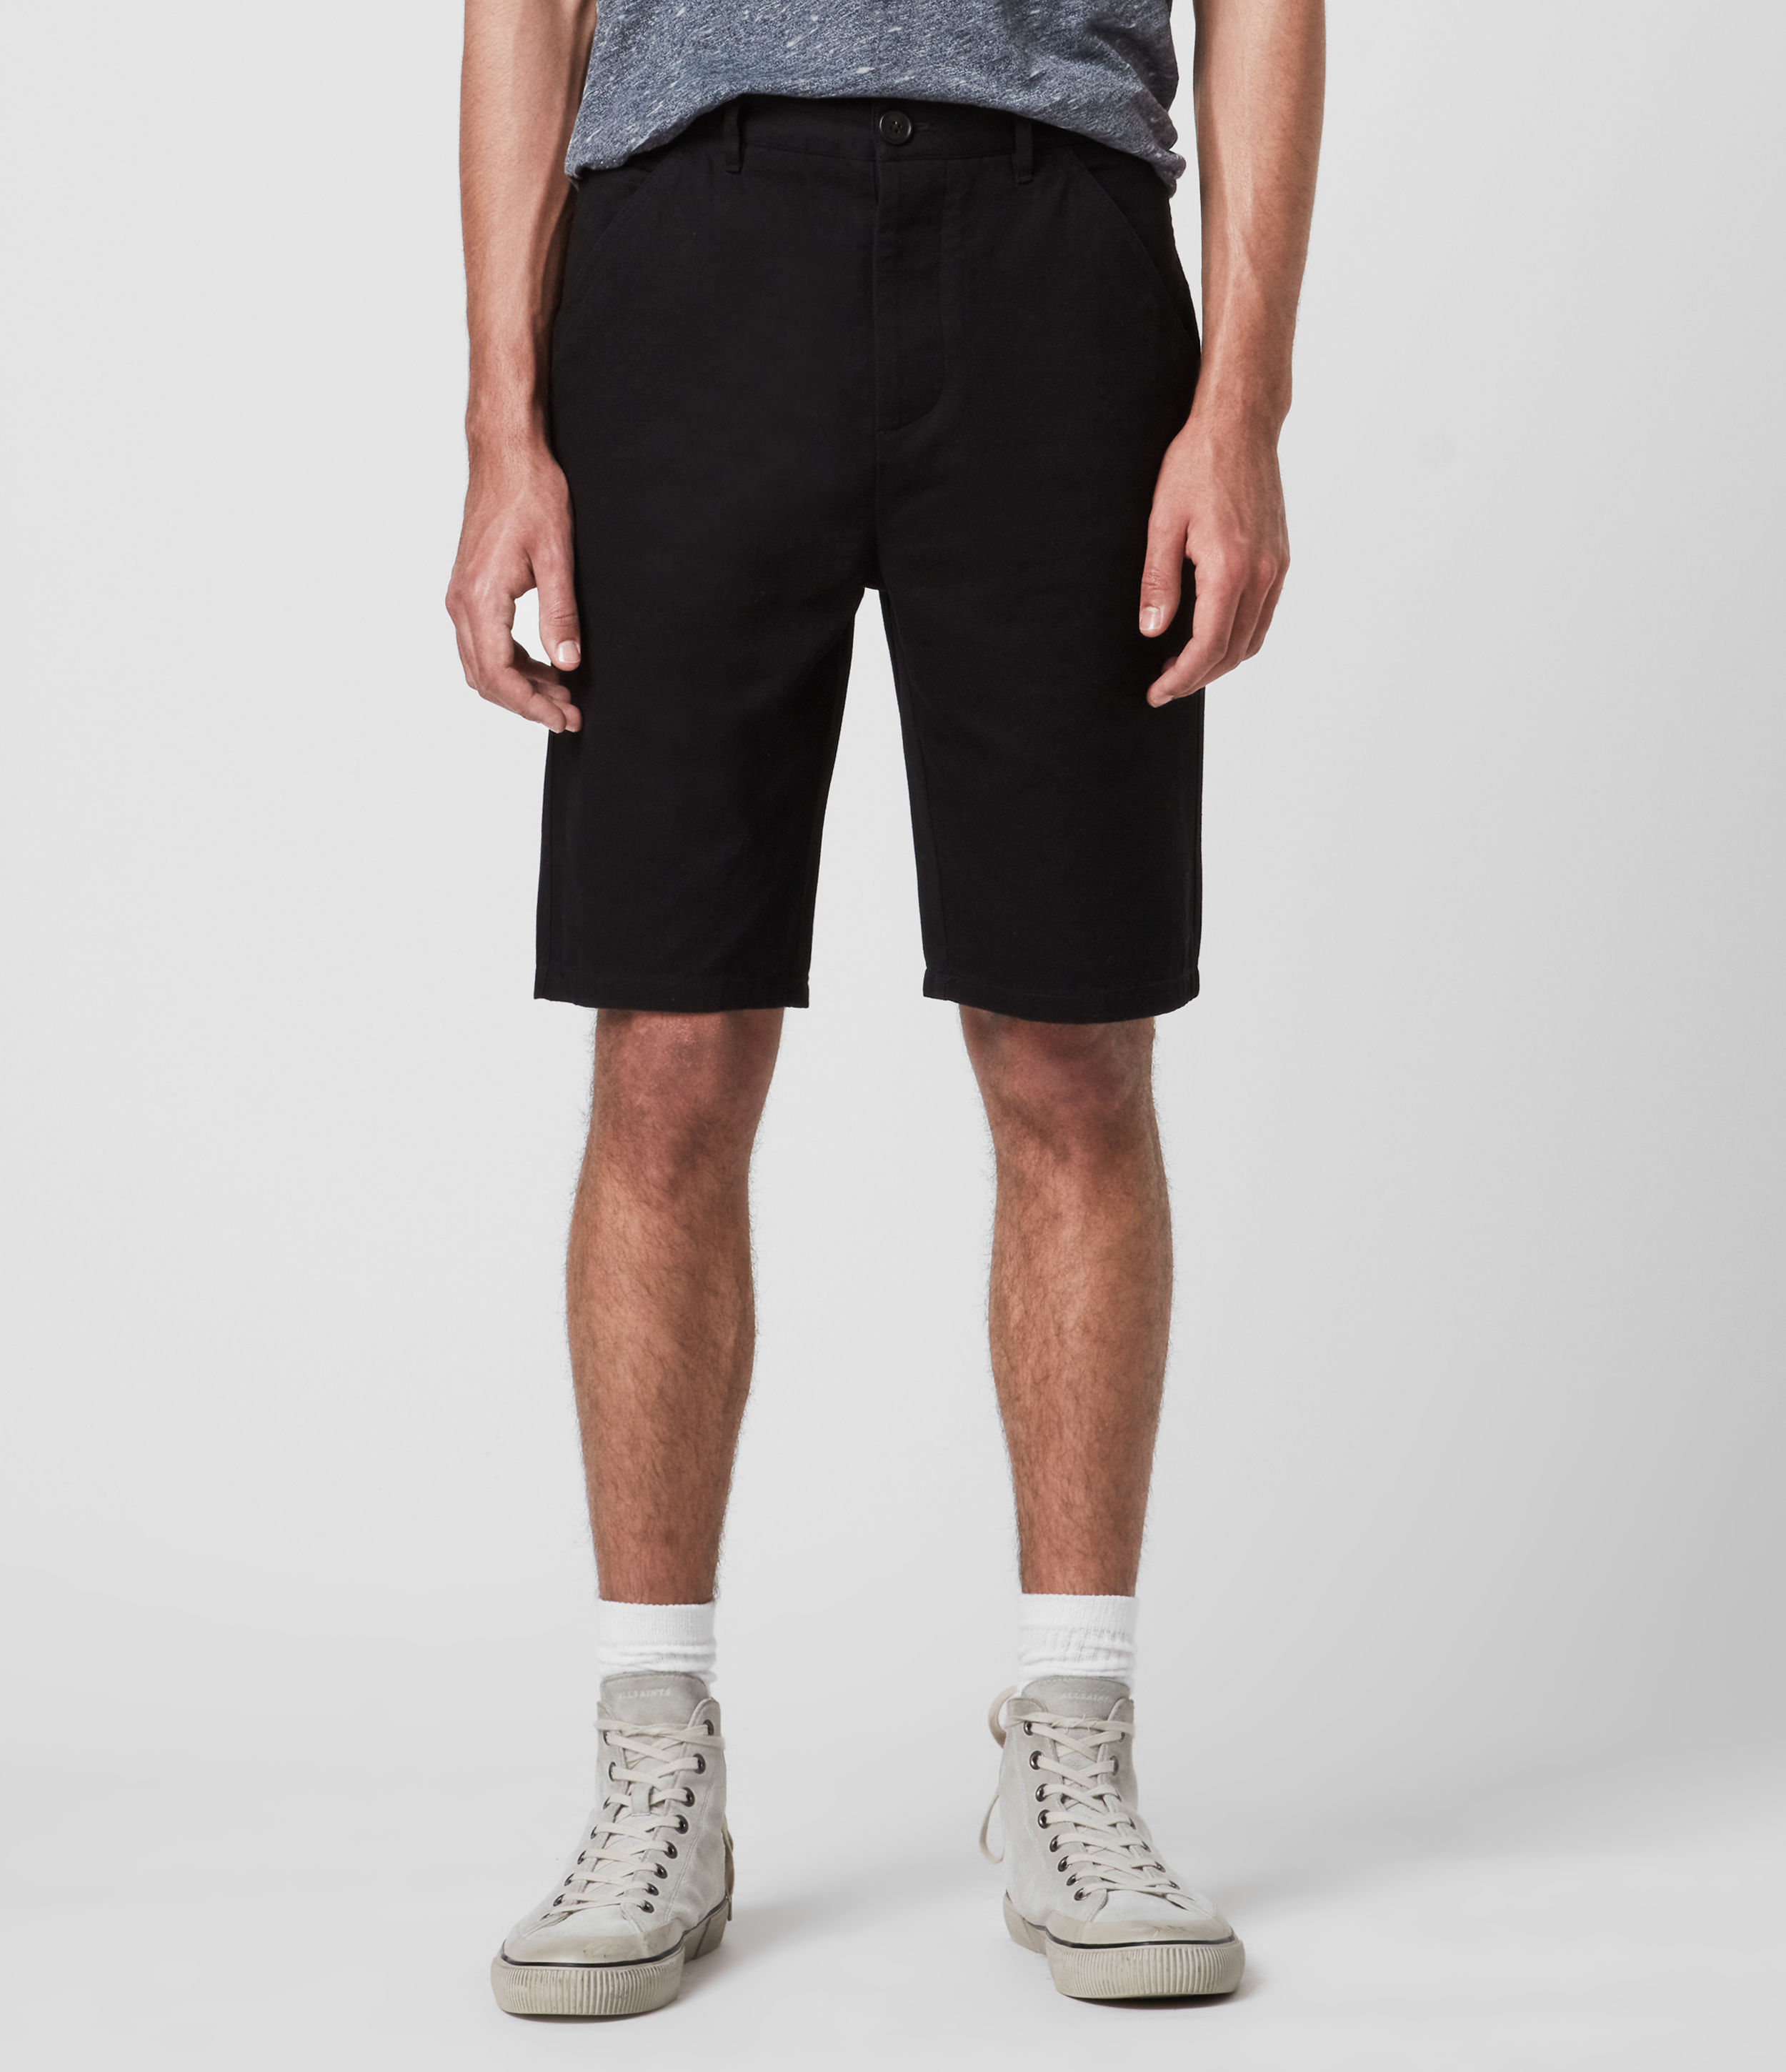 AllSaints Mens Fenner Chino Shorts, Black, Size: 30